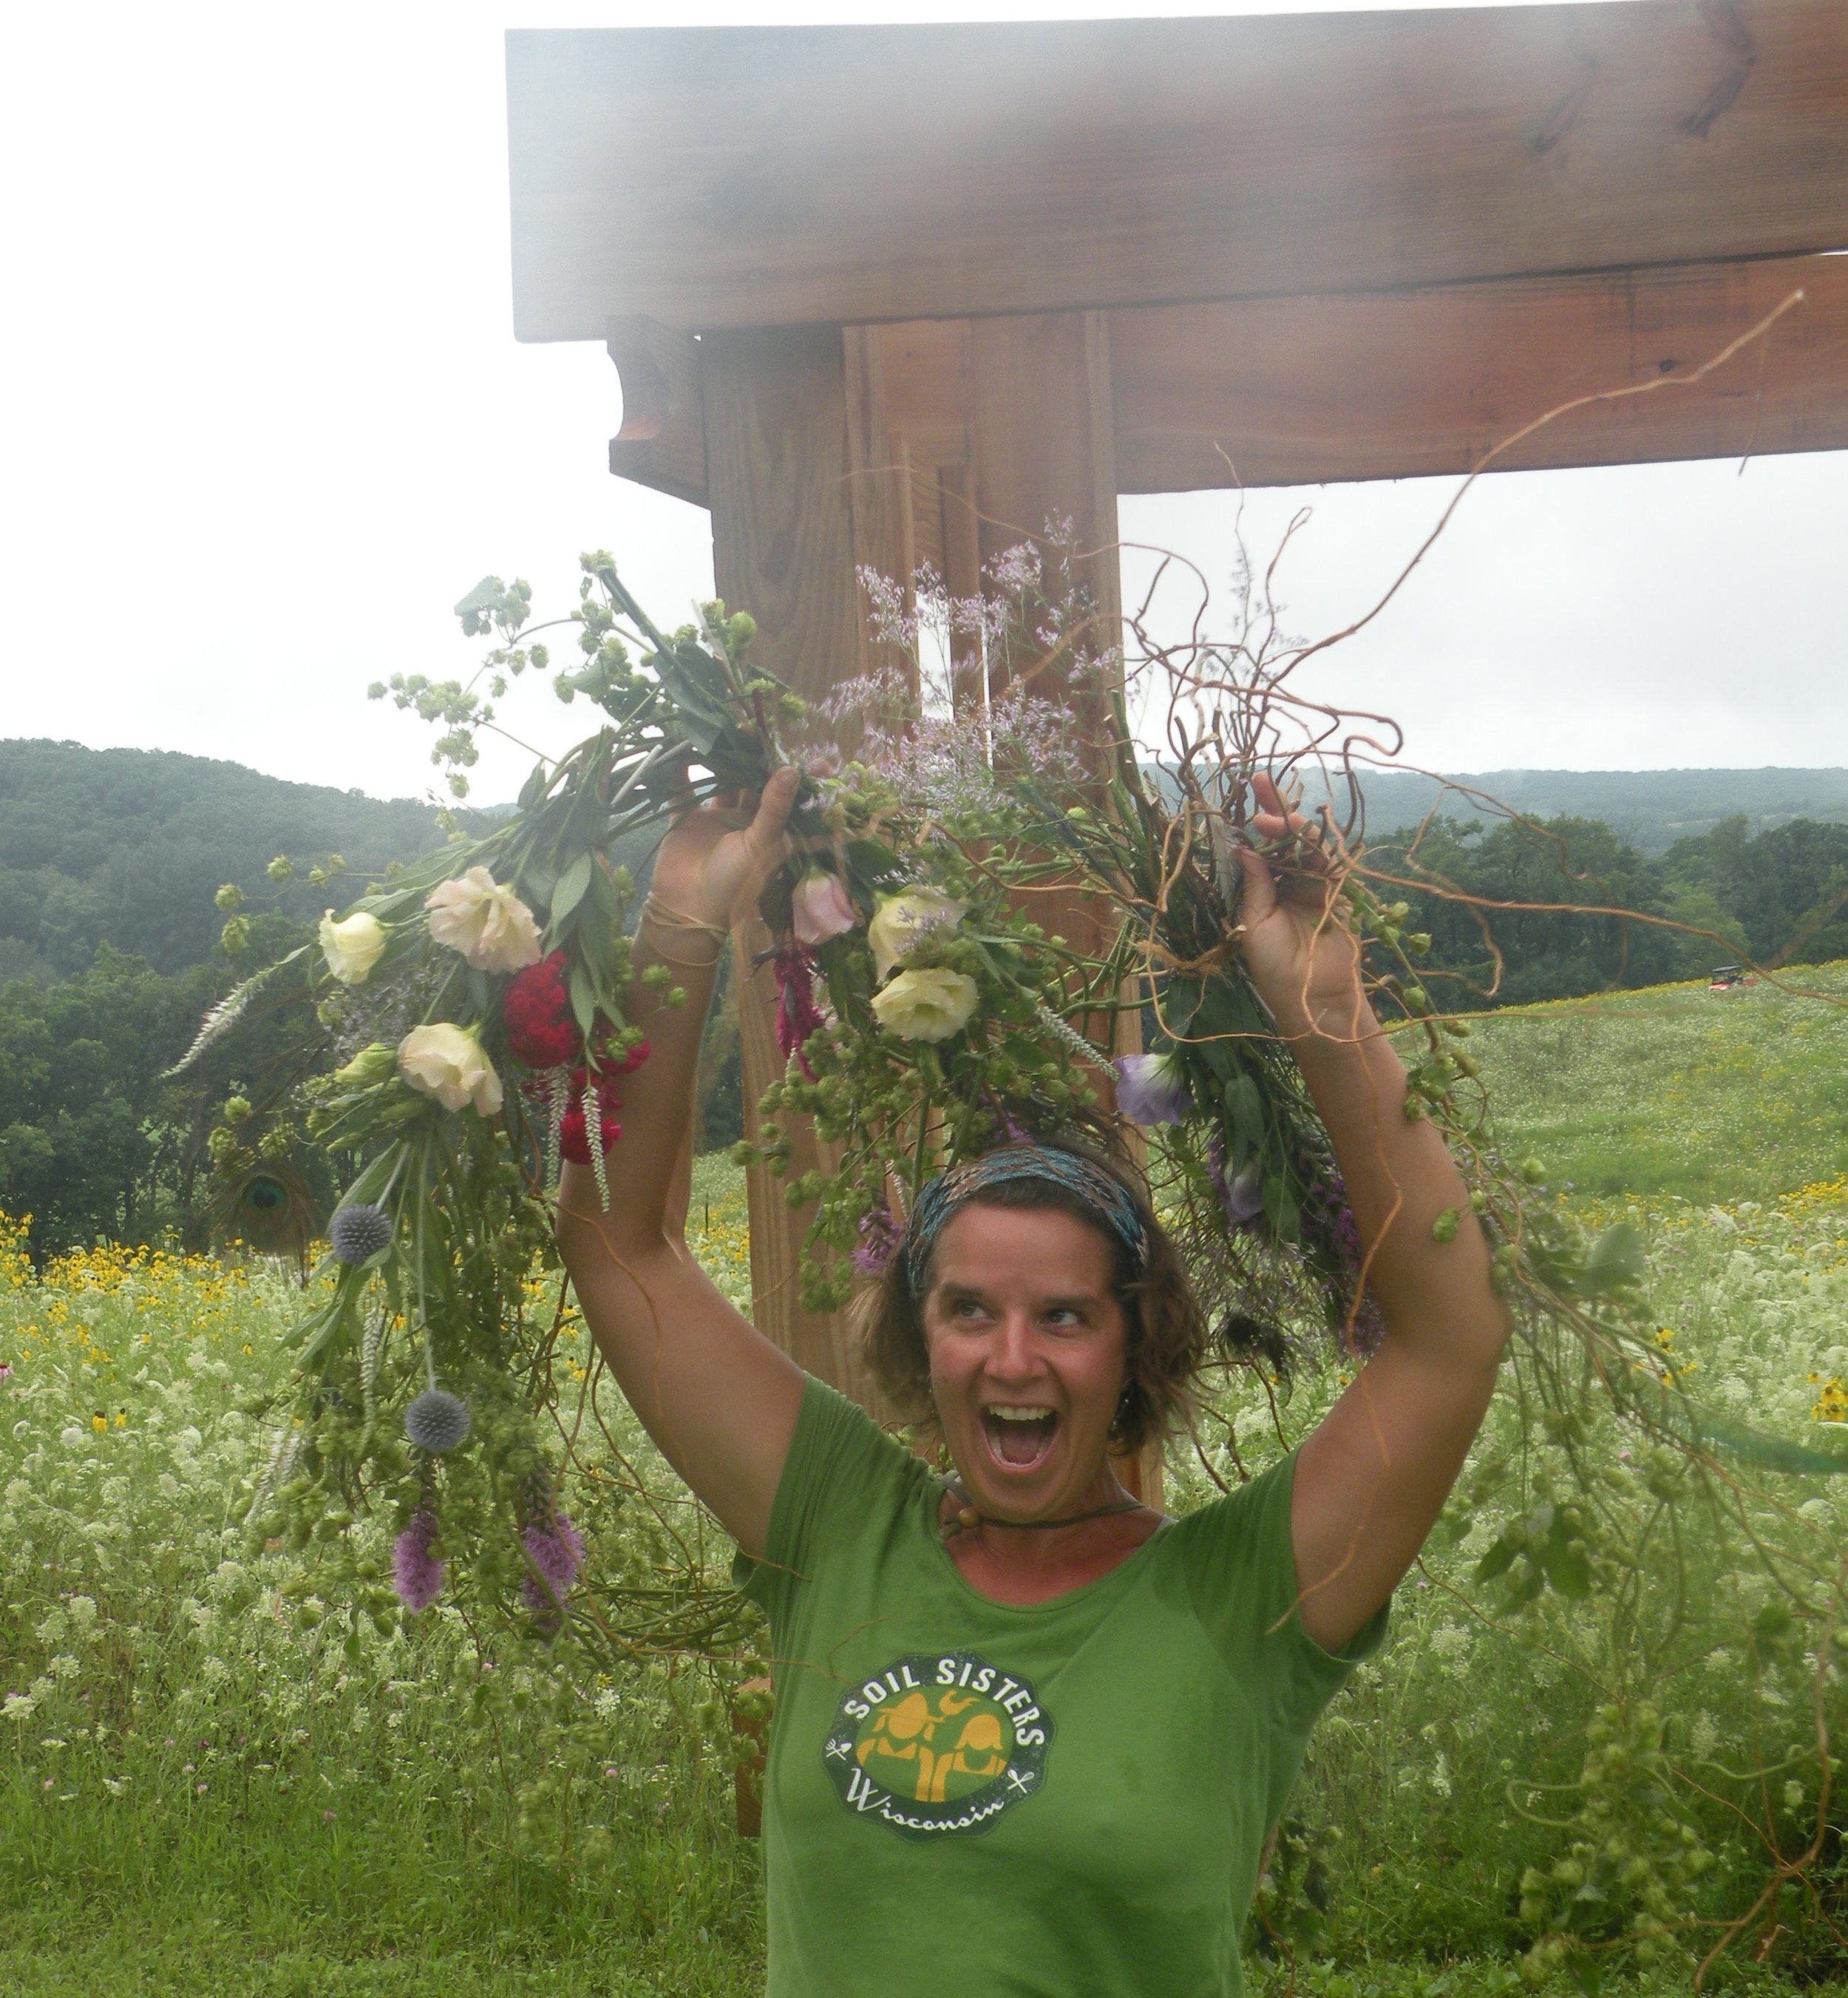 As a farmer florist, I get a workout bench pressing bouquets. Photo by Mary Jo Borchardt